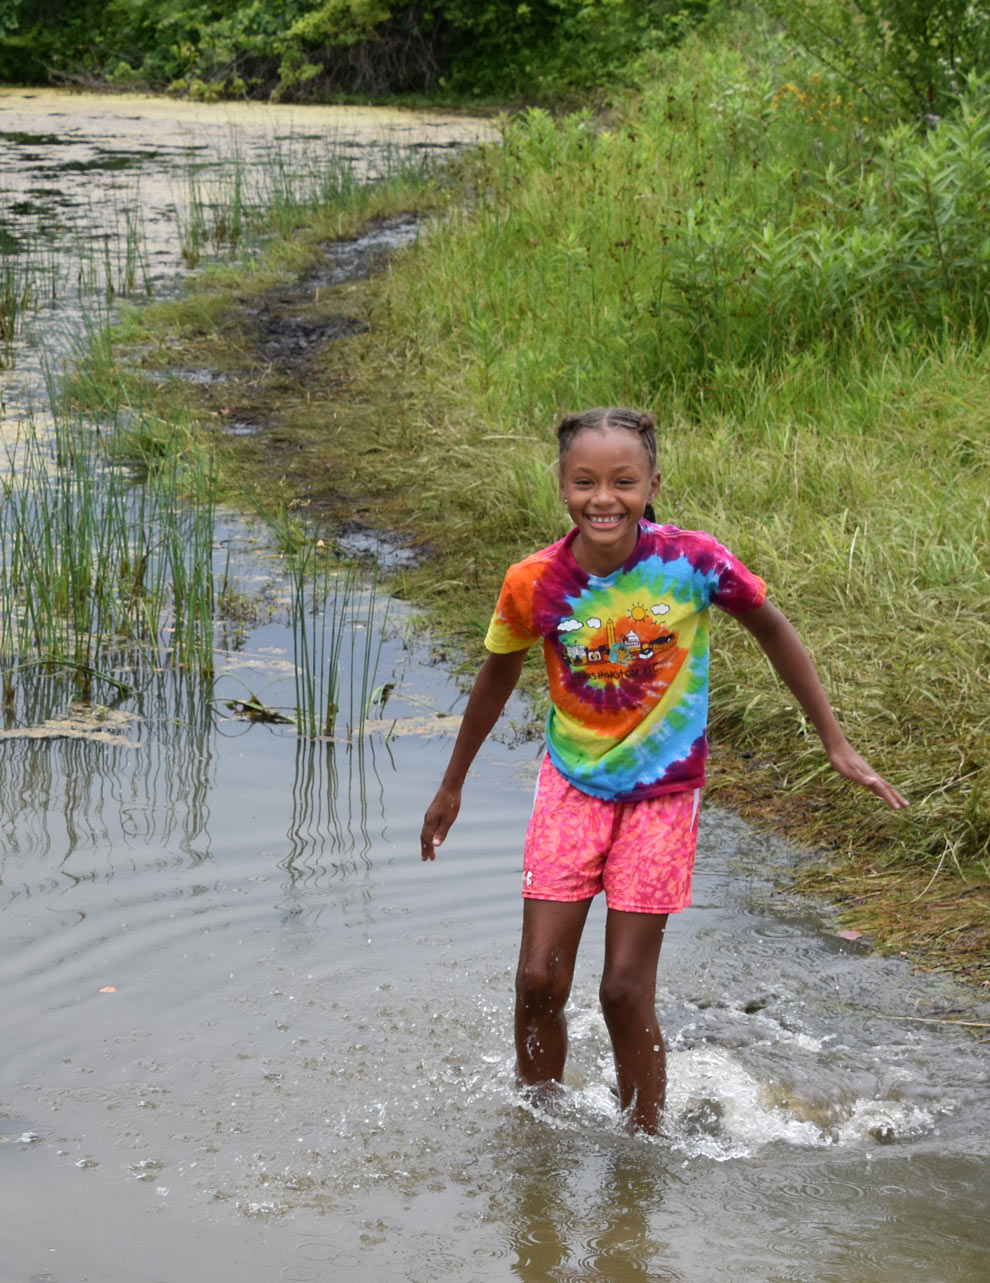 A girl on a summer camp cools off in the pond at Dragonfly Day Camp in Highbanks